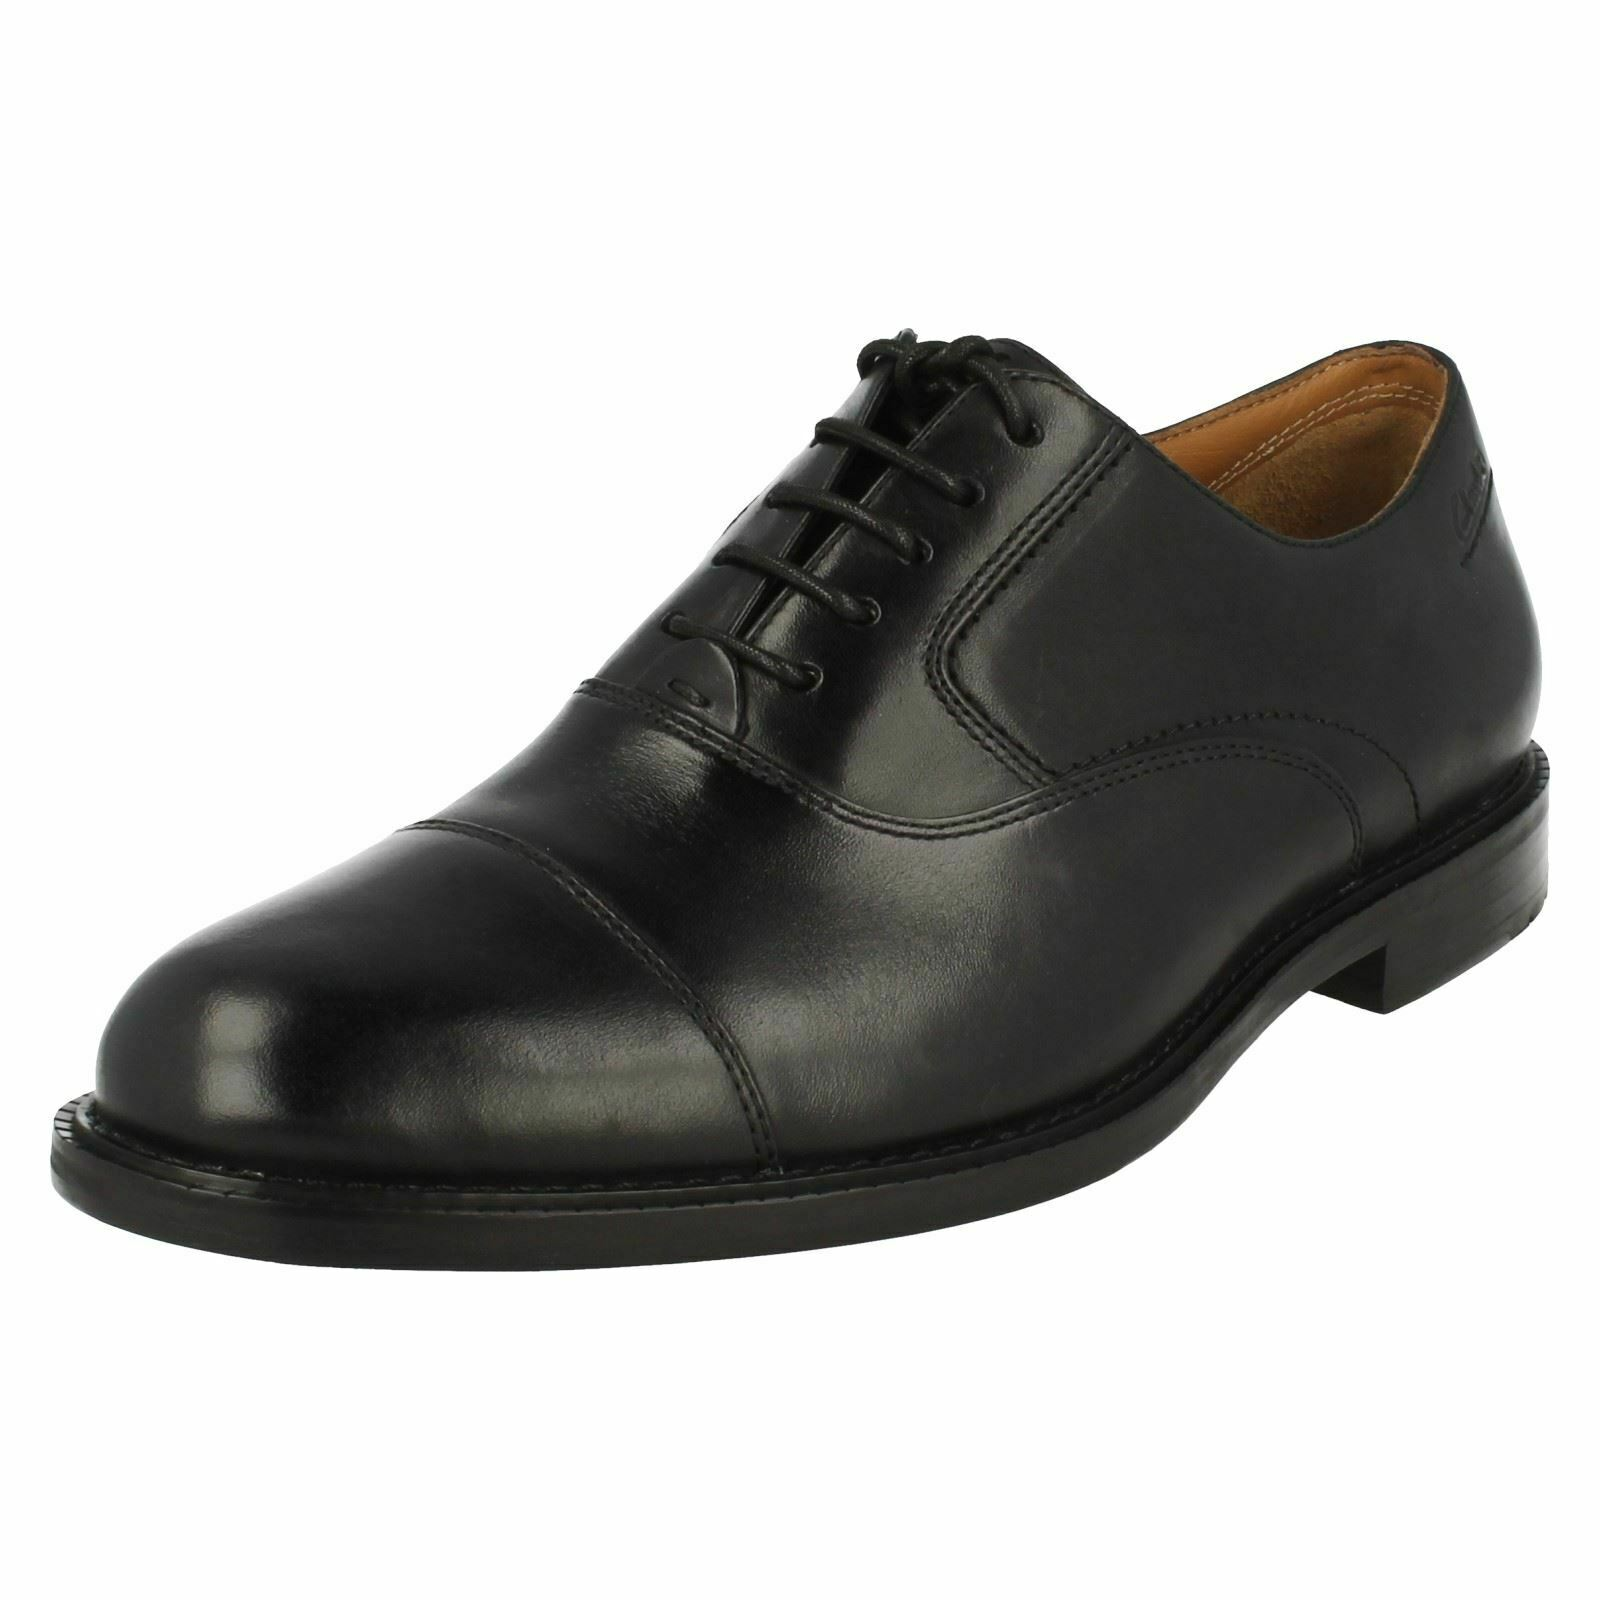 Mens Clarks Formal Lace Up shoes - Dorset Boss